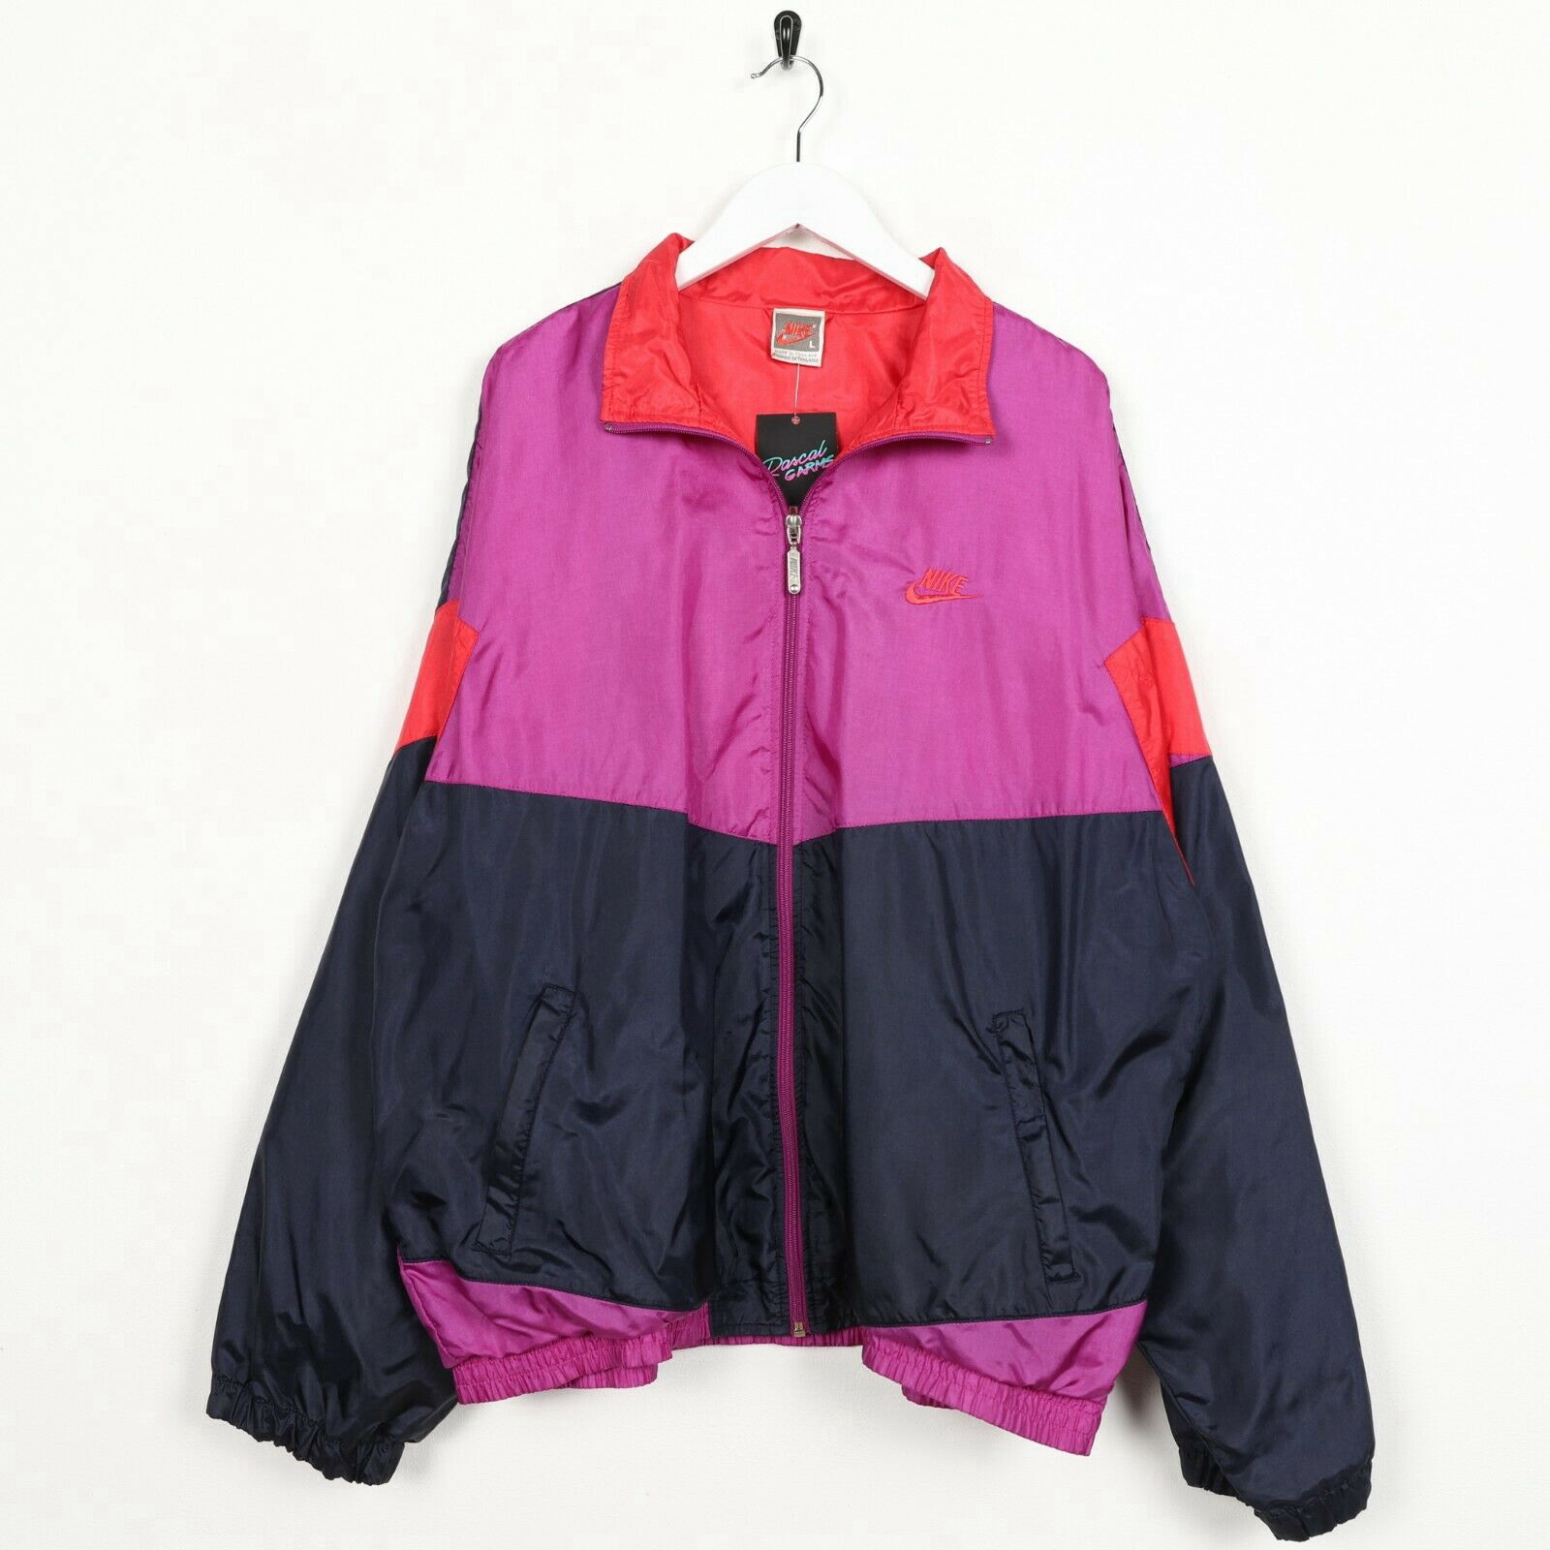 Vintage 90s Nike Windbreaker Jacket | Beyond 94